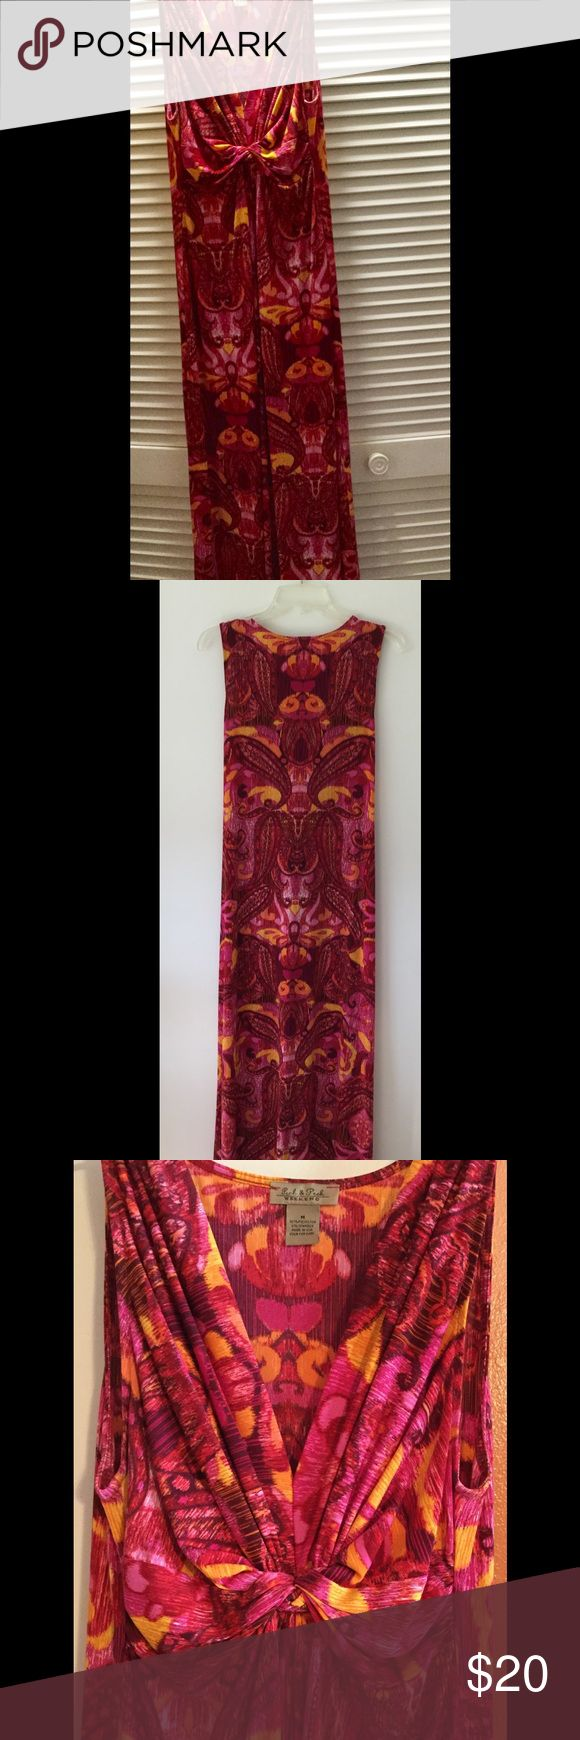 "Pink & yellow maxi dress. Size medium. V-neck. Peck and Peck Weekend beautiful medium size pink/yellow/red multi colored maxi dress. 95% polyester, 5% spandex. V-neck with knot design in front. Hangs loose. Machine wash and tumble dry. Had altered to fit my 5'5"" height. Like new. Only wore 3/4 occasions. Very classy look when paired with sandals for a casual look or heels for a dressy look. Peck & Peck Weekend Dresses Maxi"